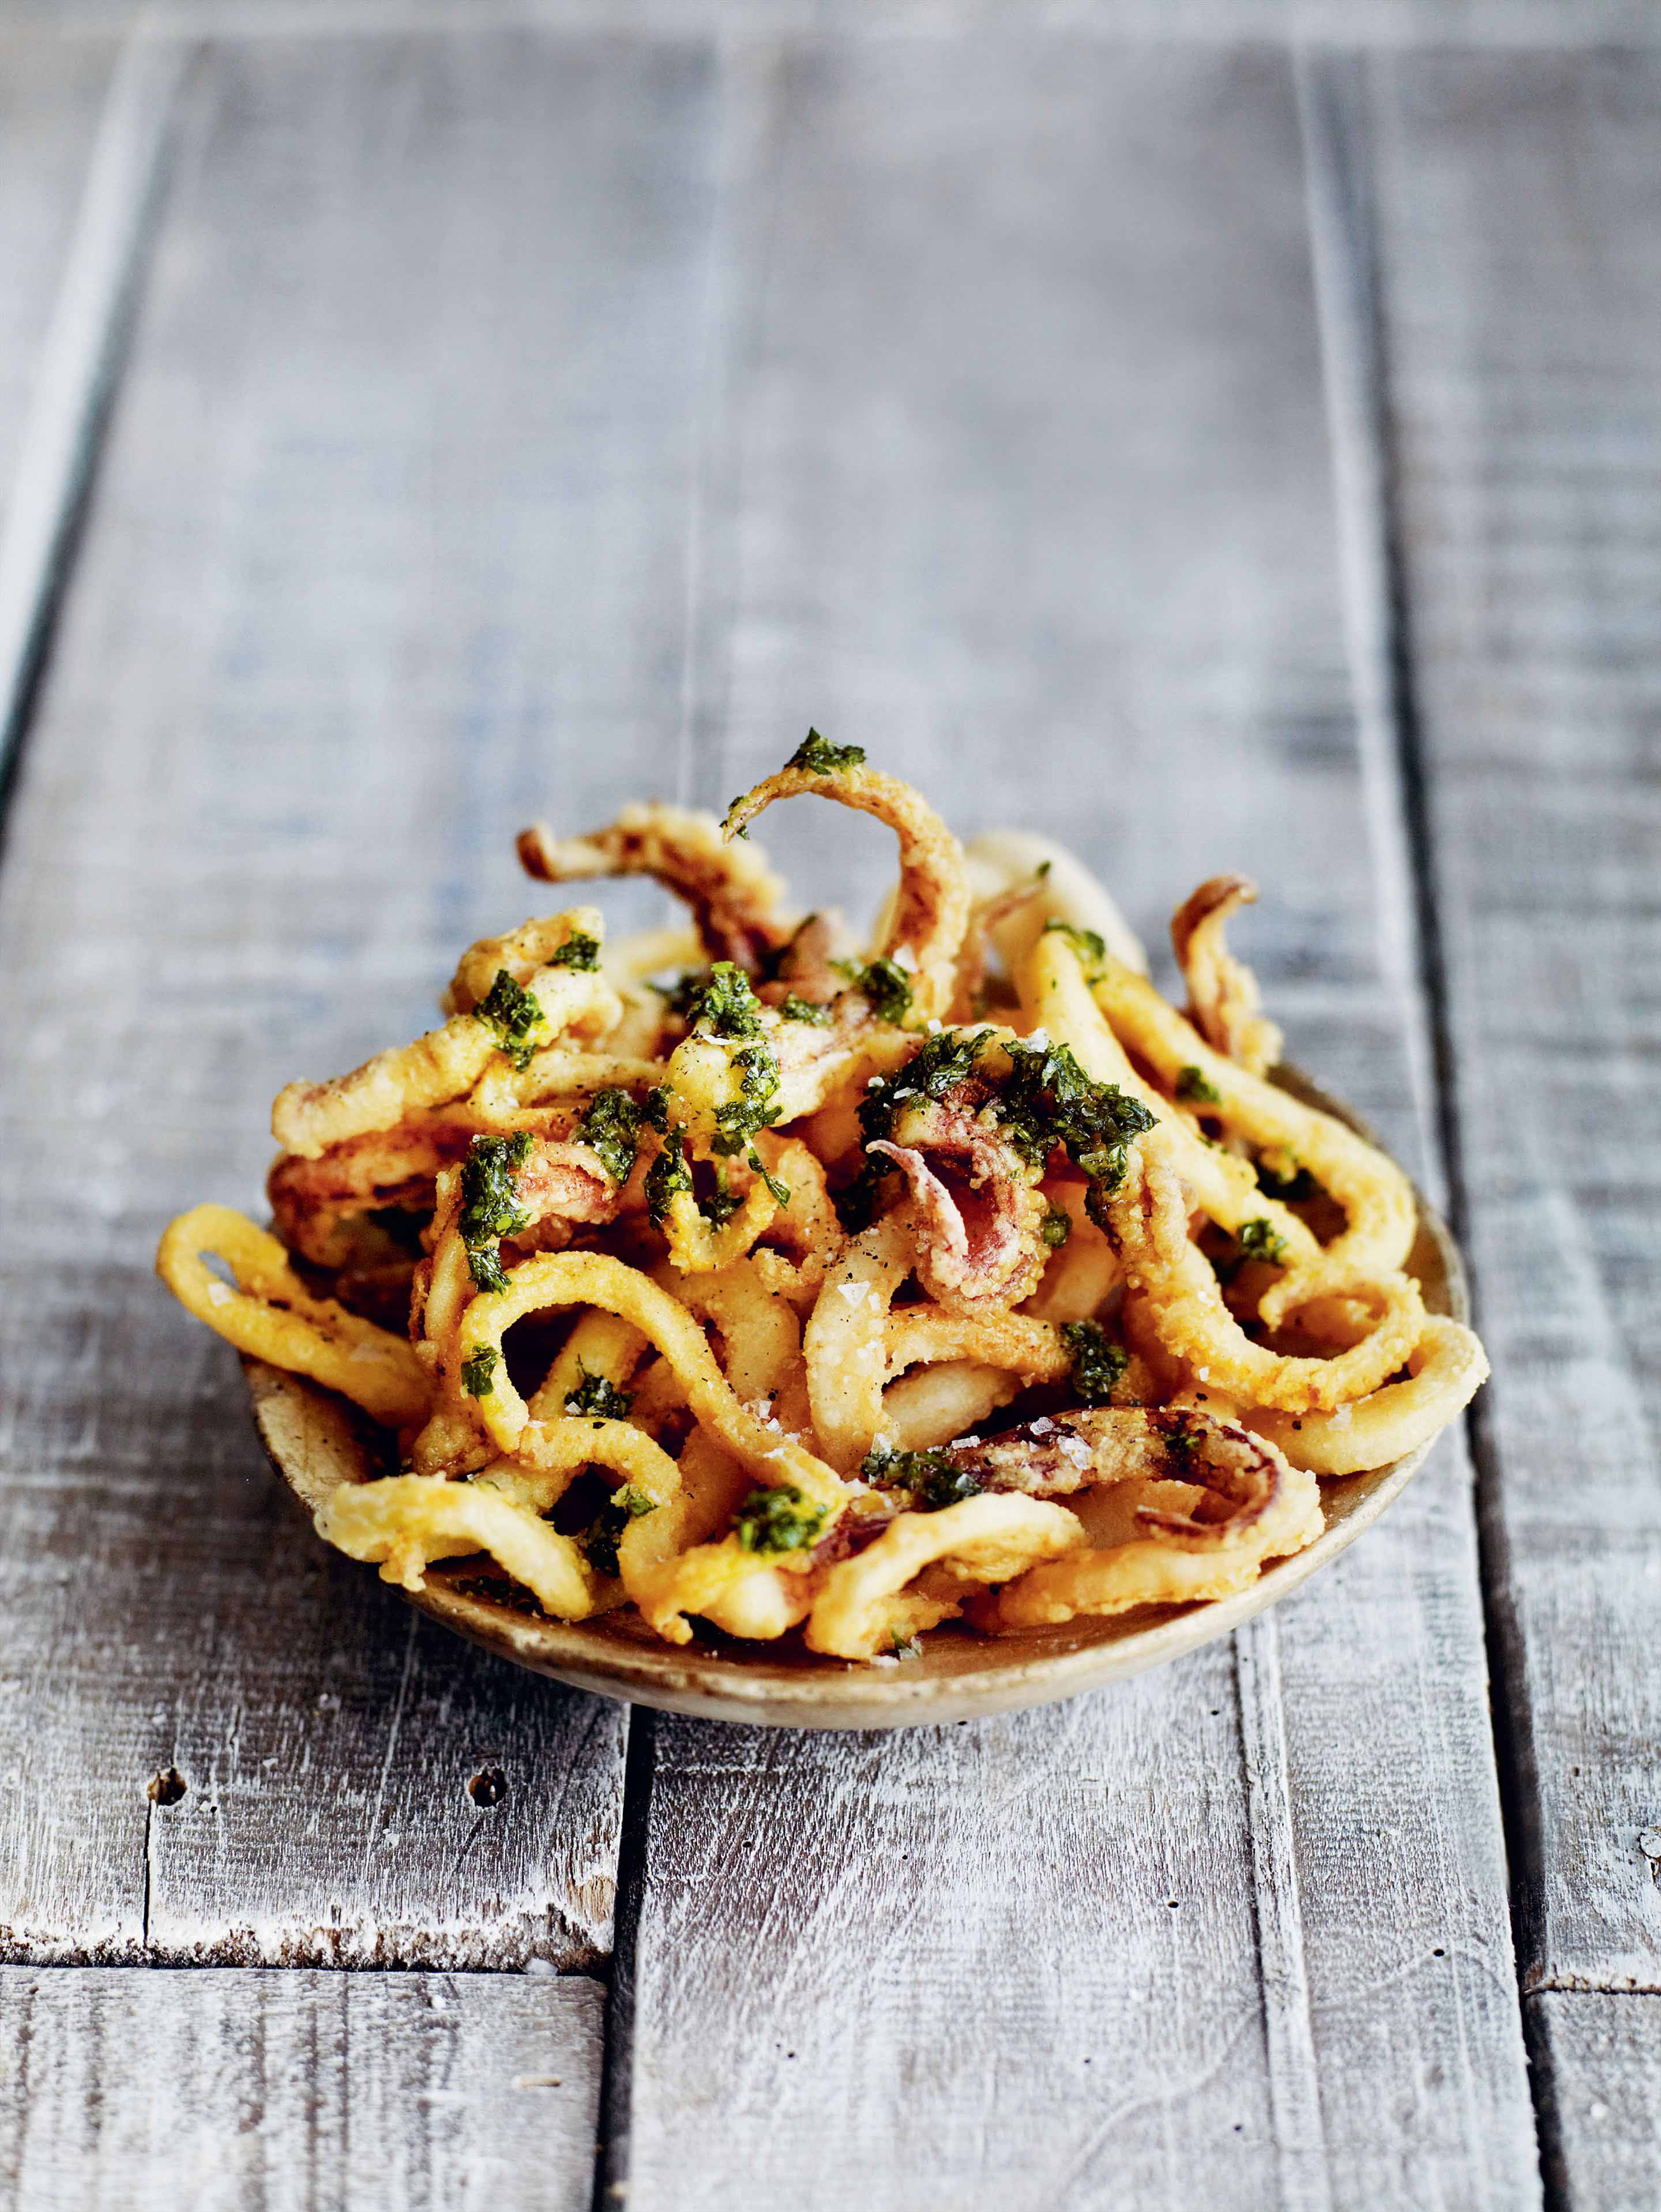 Fried squid with garlic & parsley